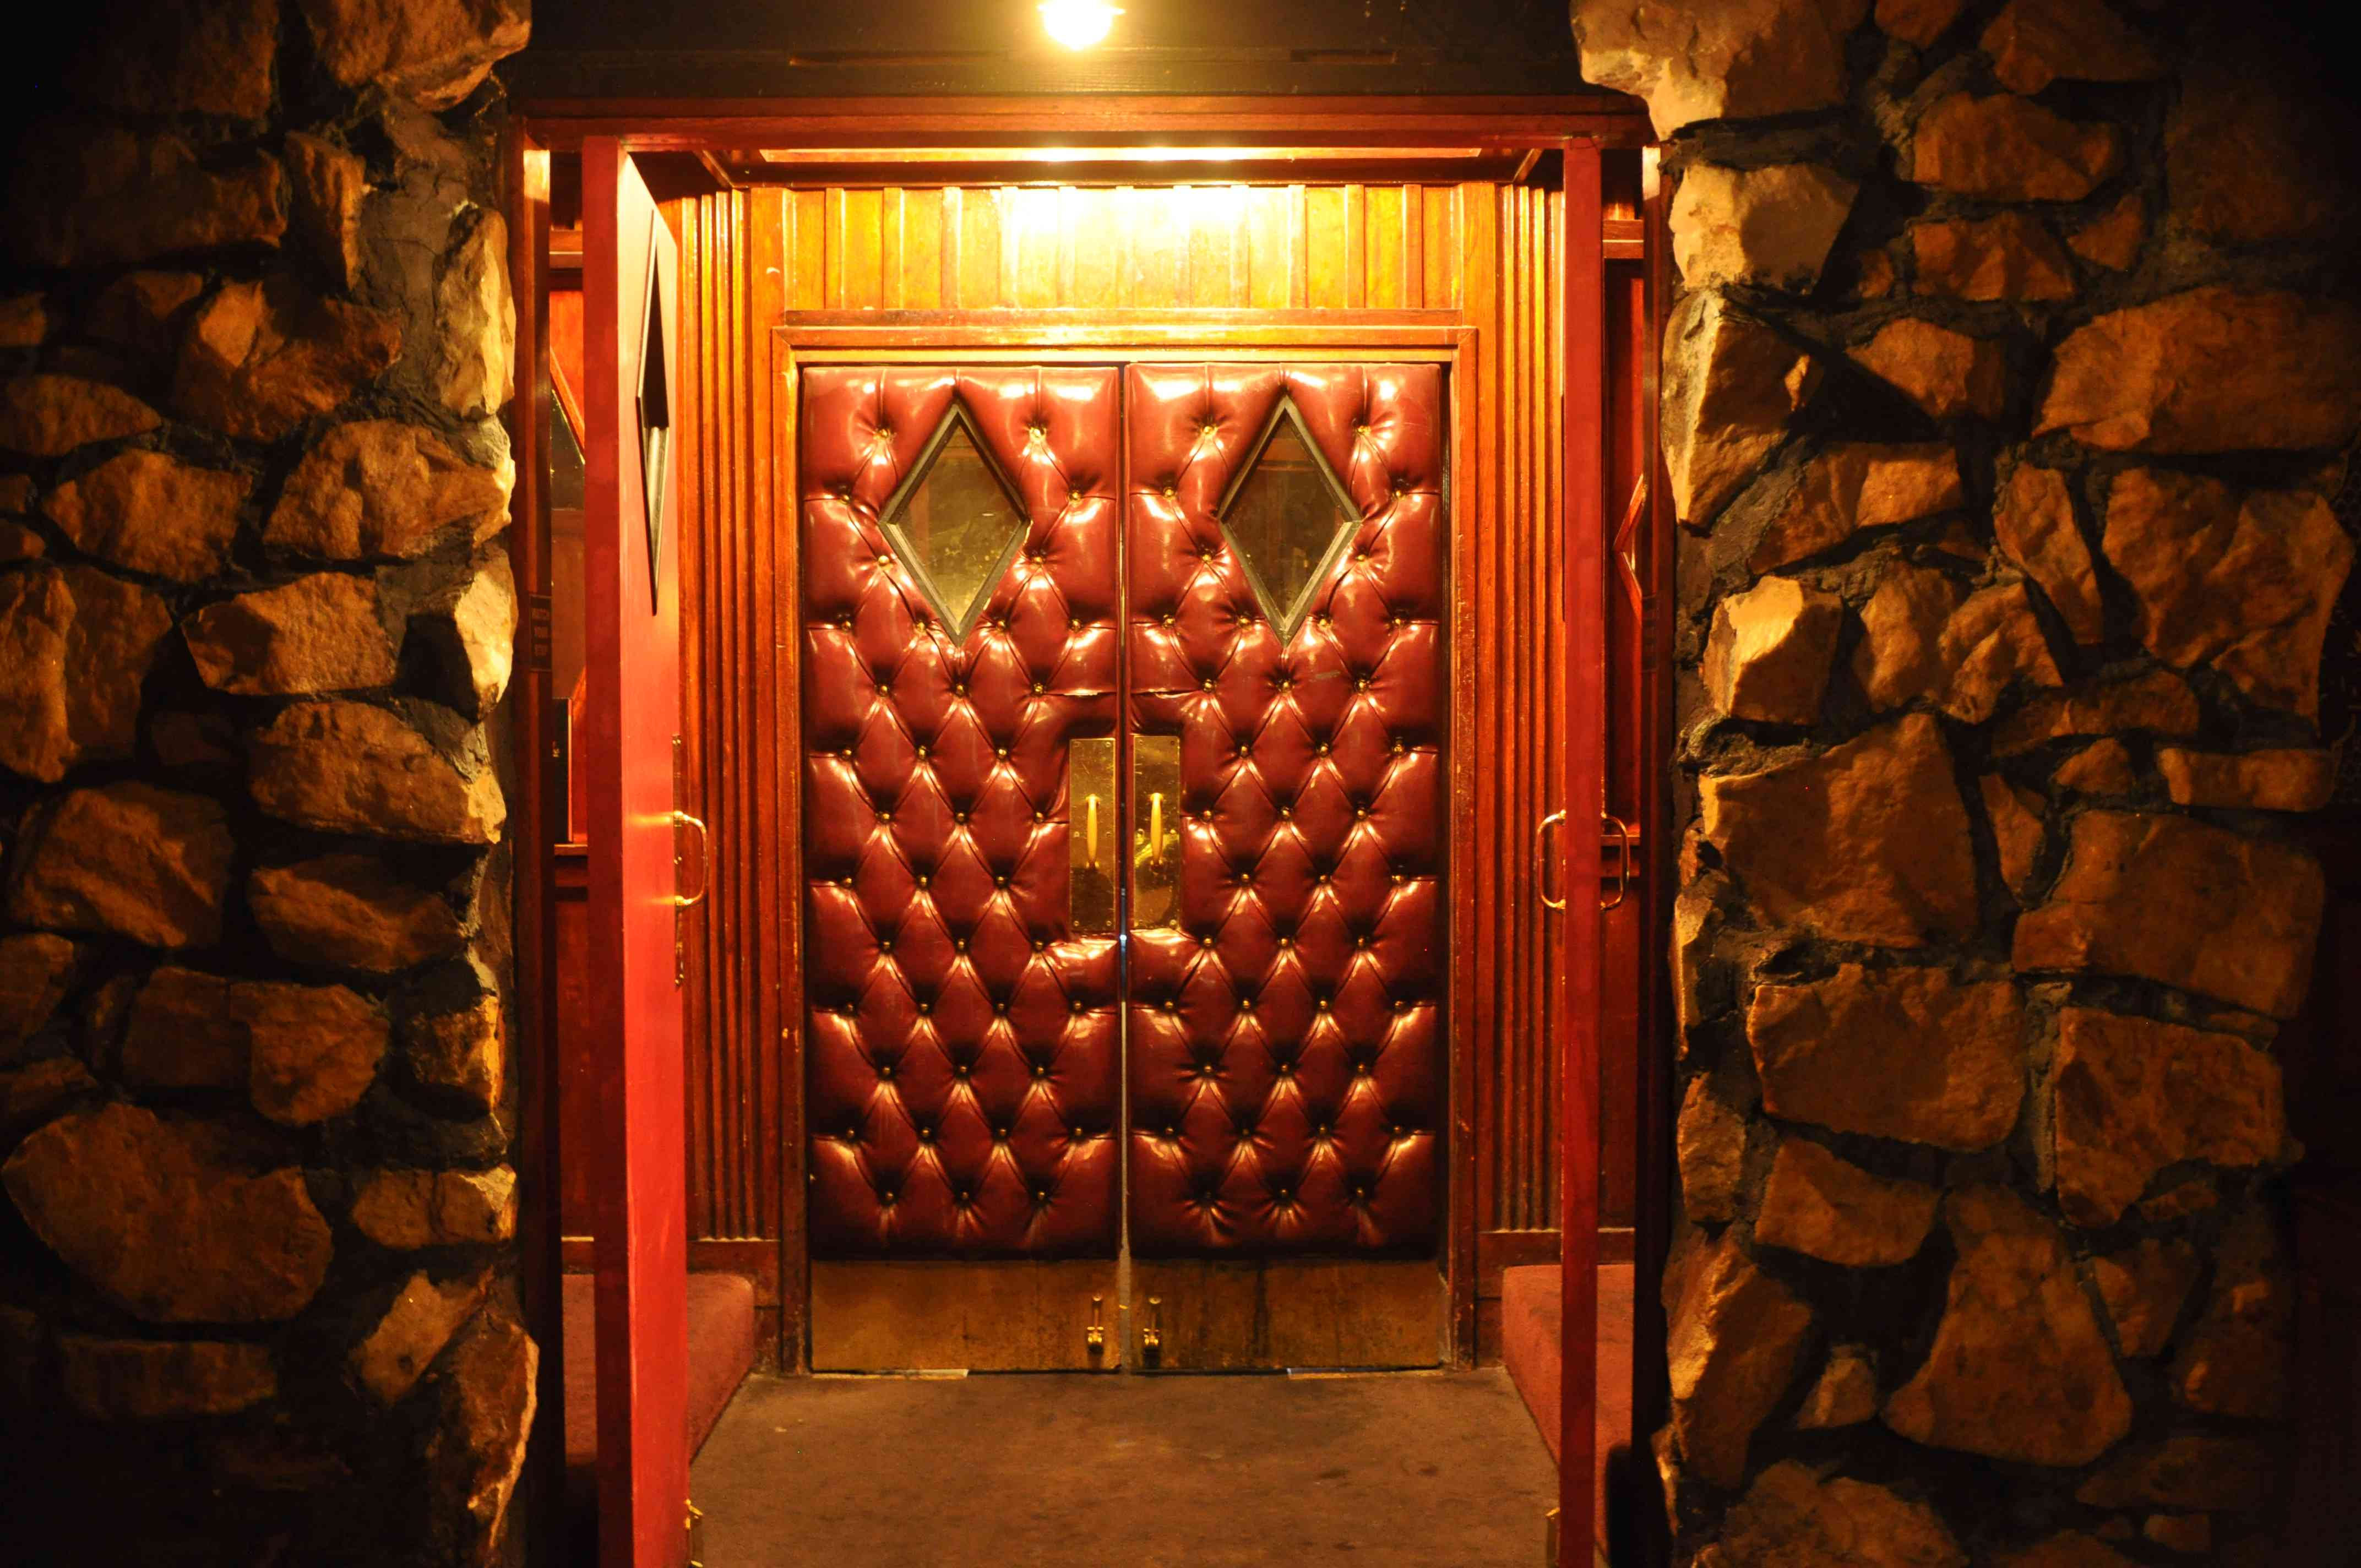 Two closed red-quilted leather doors with behind a set of open, red wooden doors